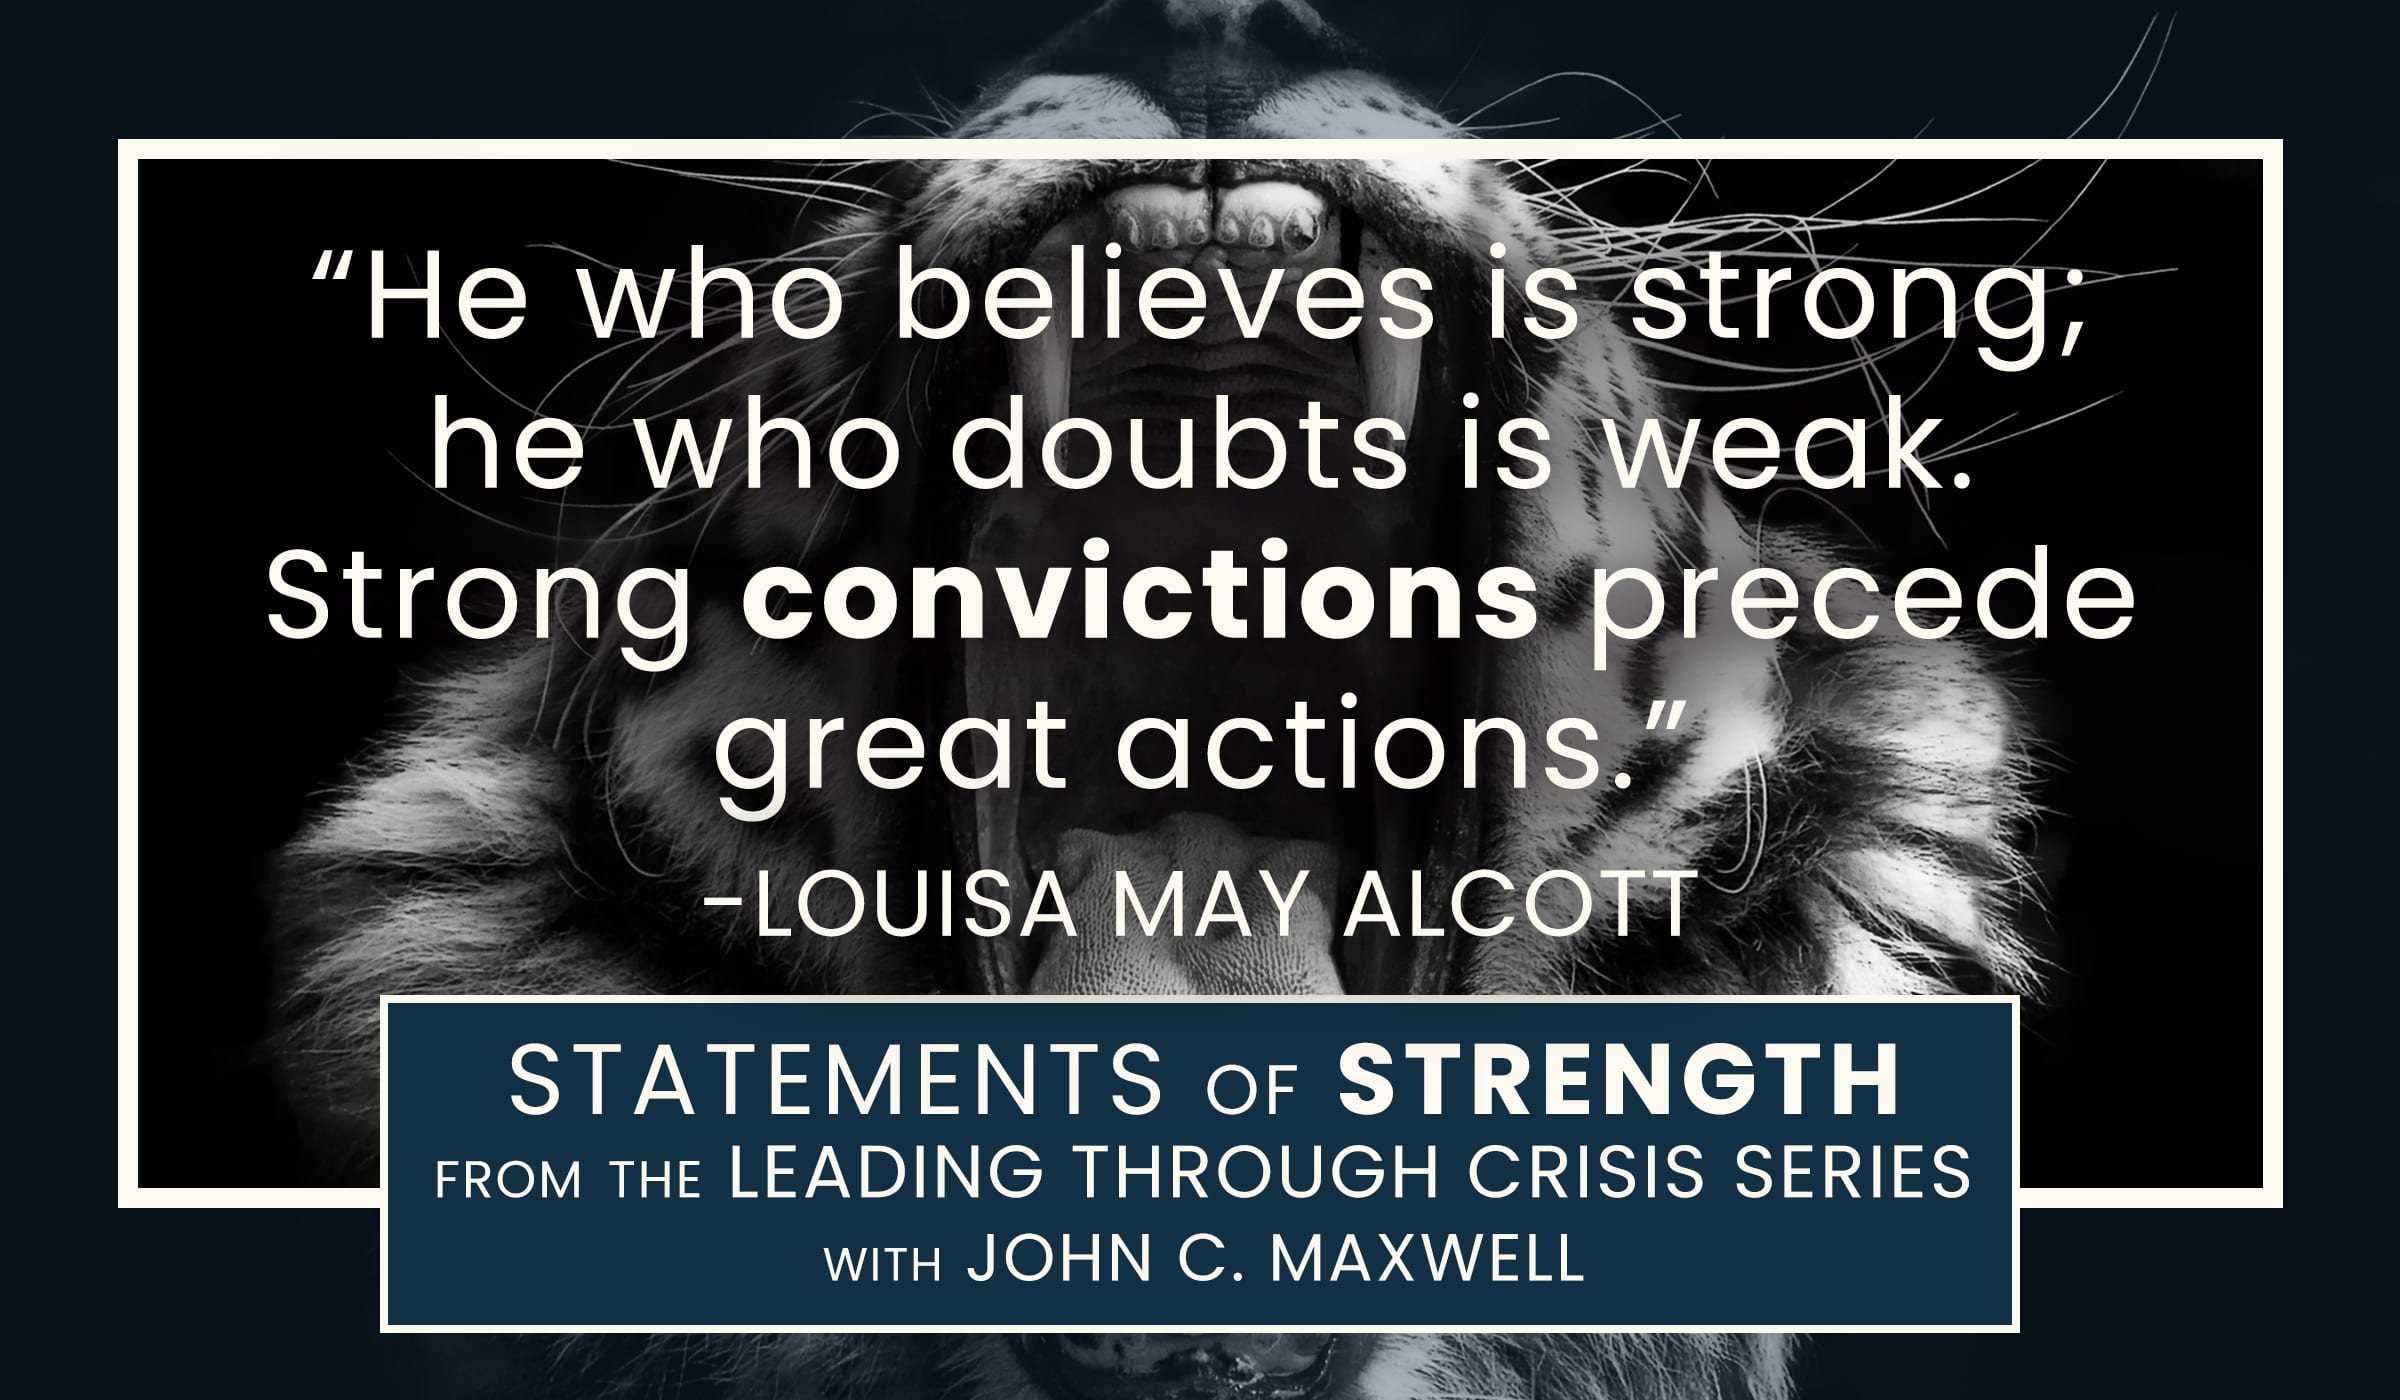 image of quote pic with text quotation by Louisa may Alcott